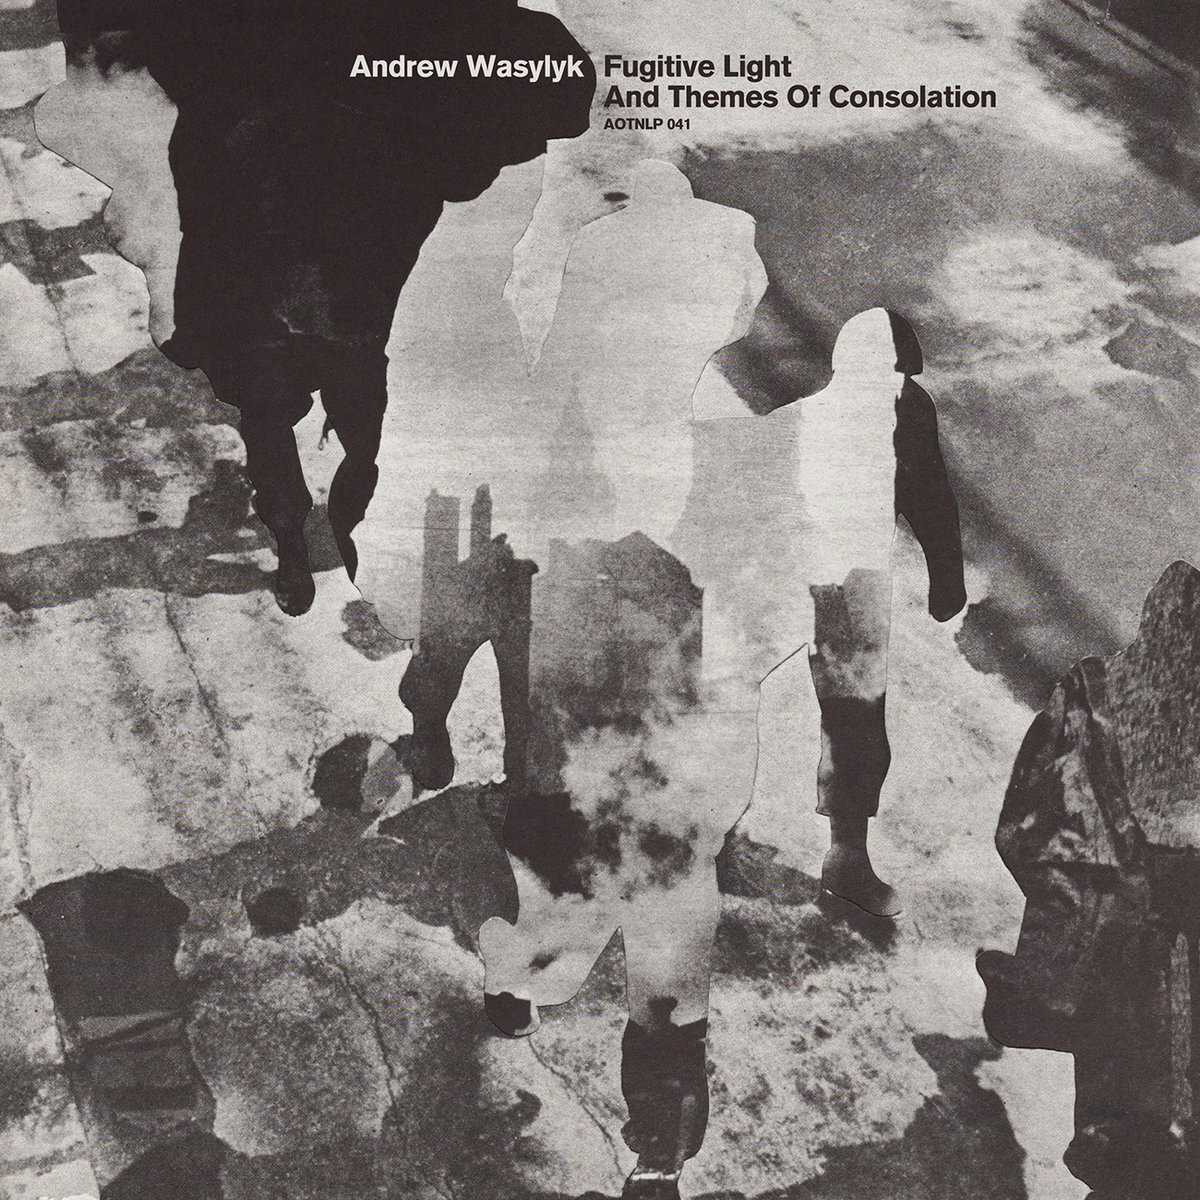 Athens of the North releasing new Andrew Wasylyk album.